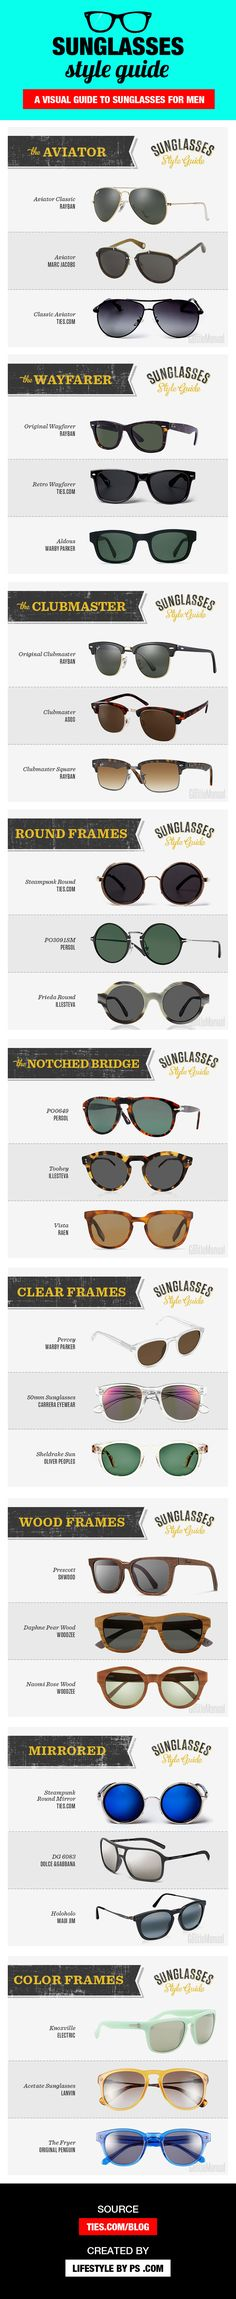 A Visual Guide To Sunglasses For Men - Infographic | LIFESTYLE BY PS